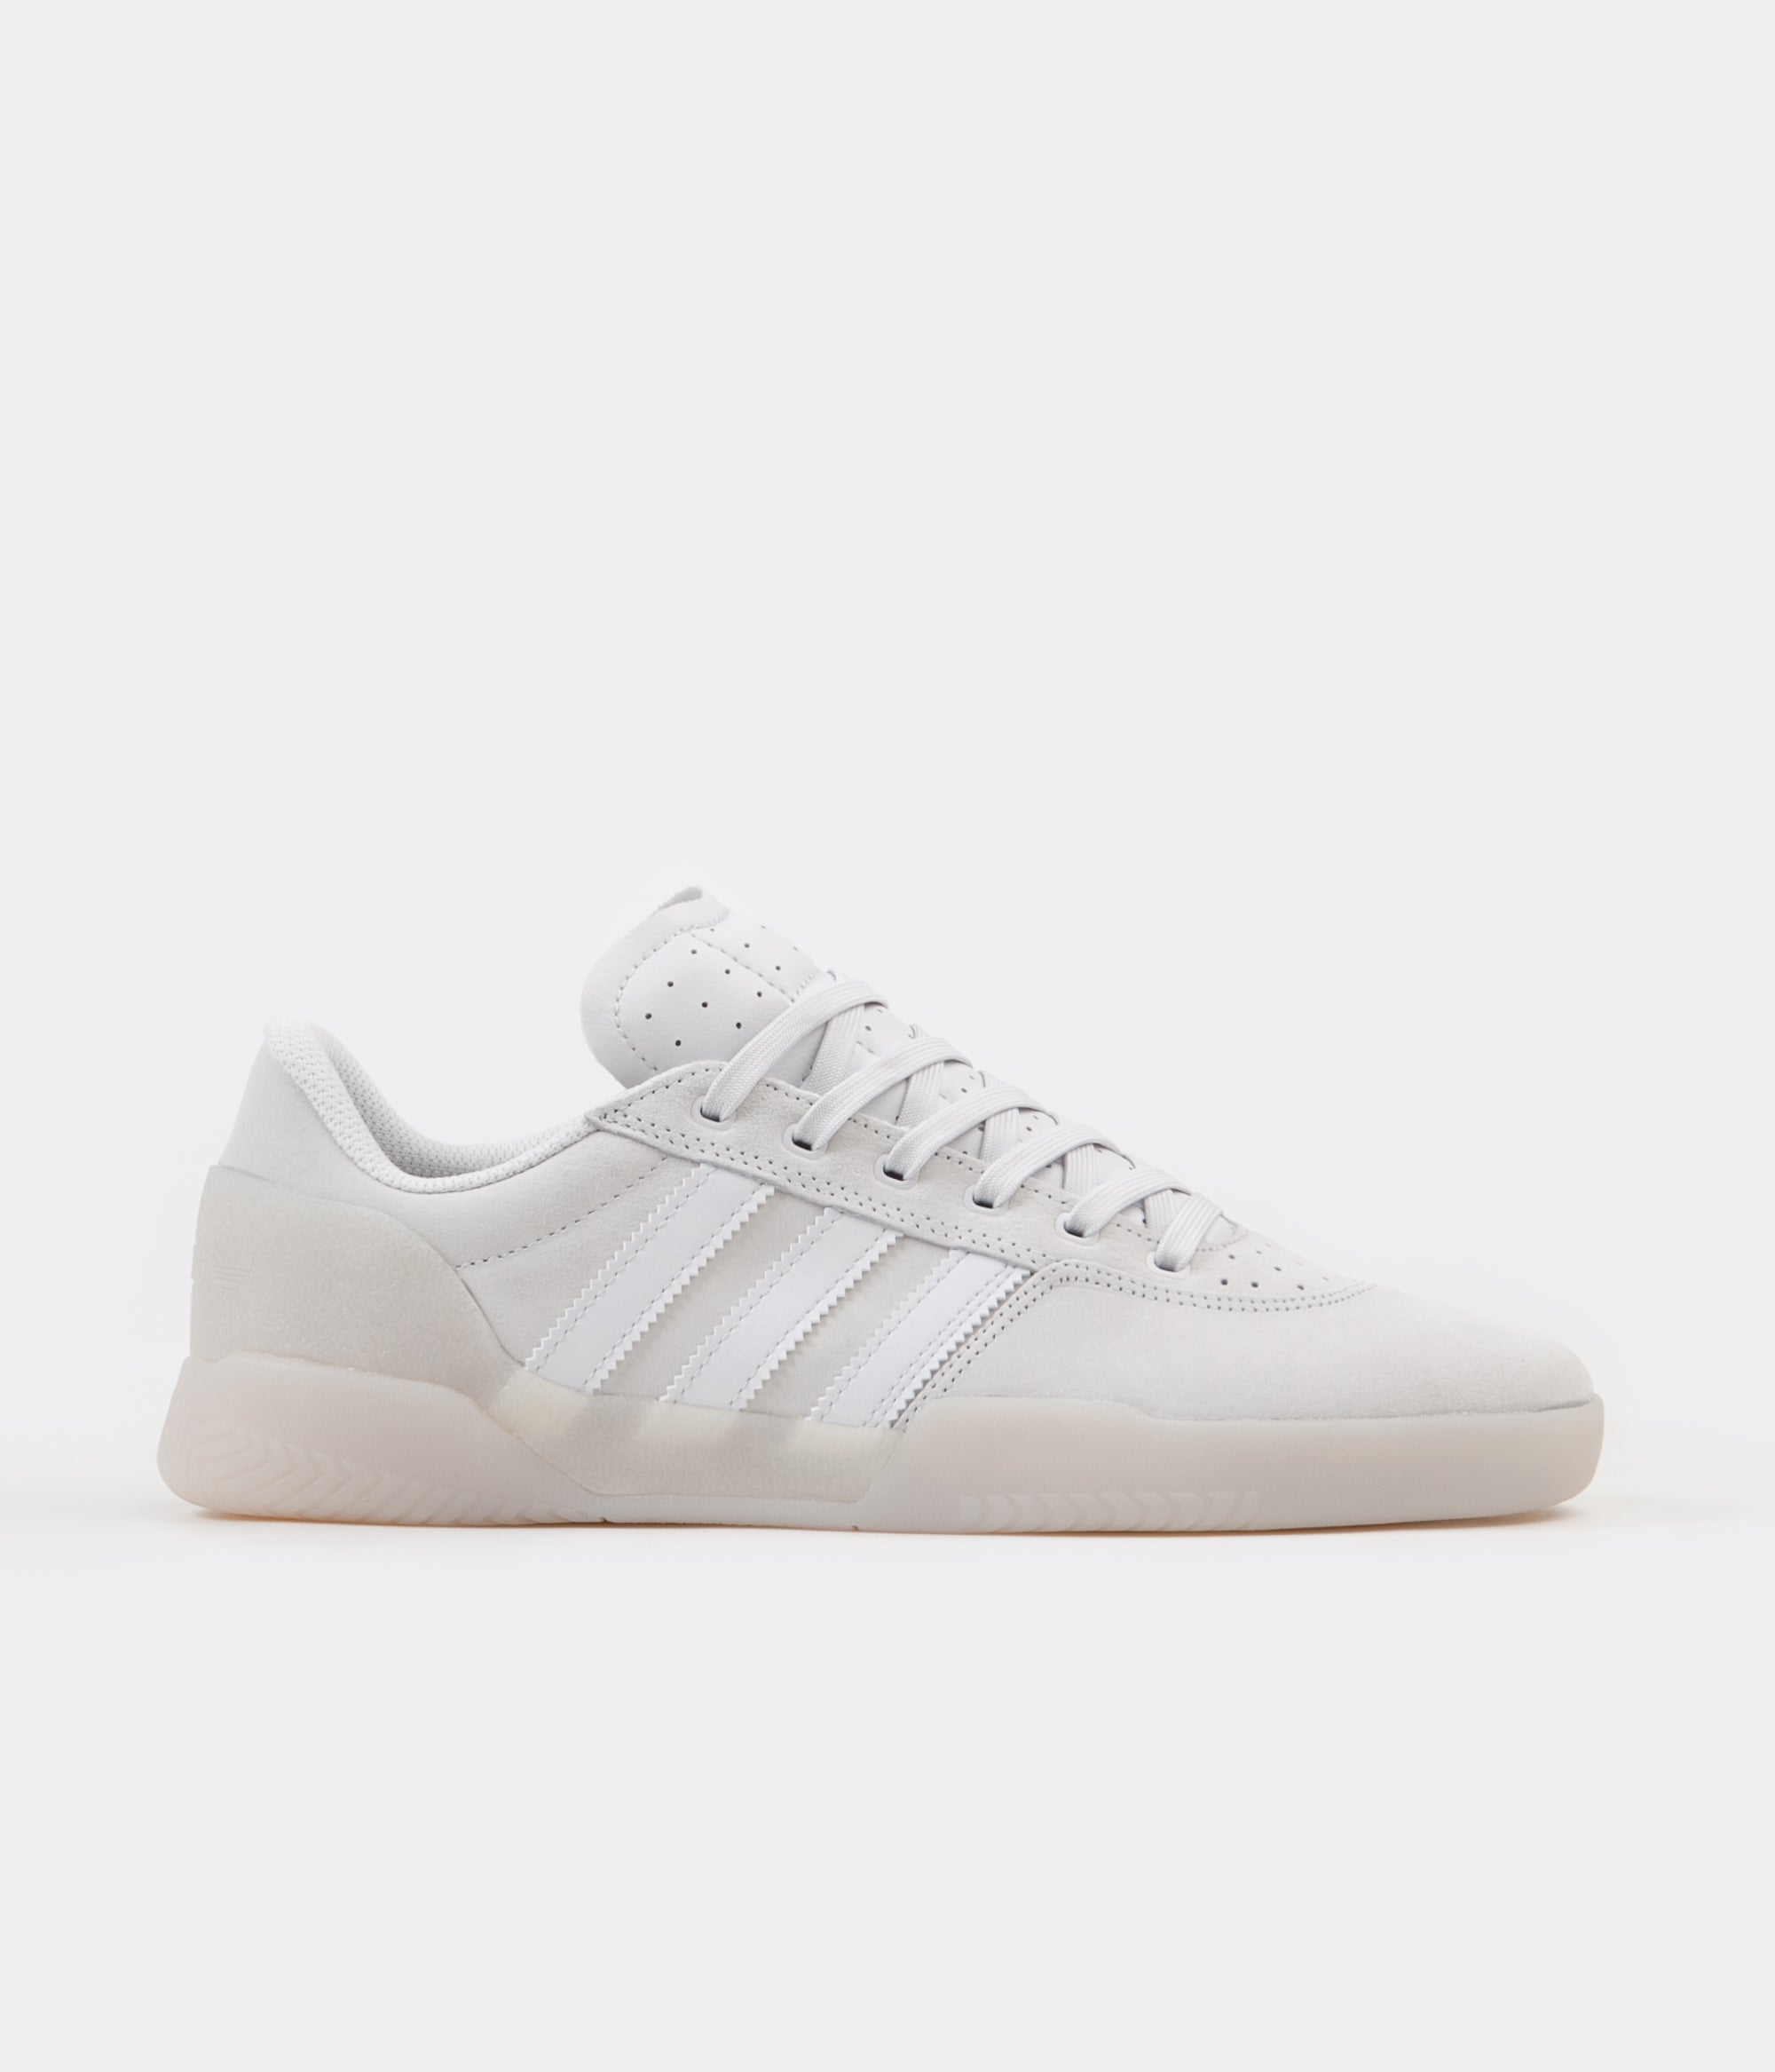 48167a30de260 Adidas City Cup Shoes - Crystal White / Crystal White / Crystal ...